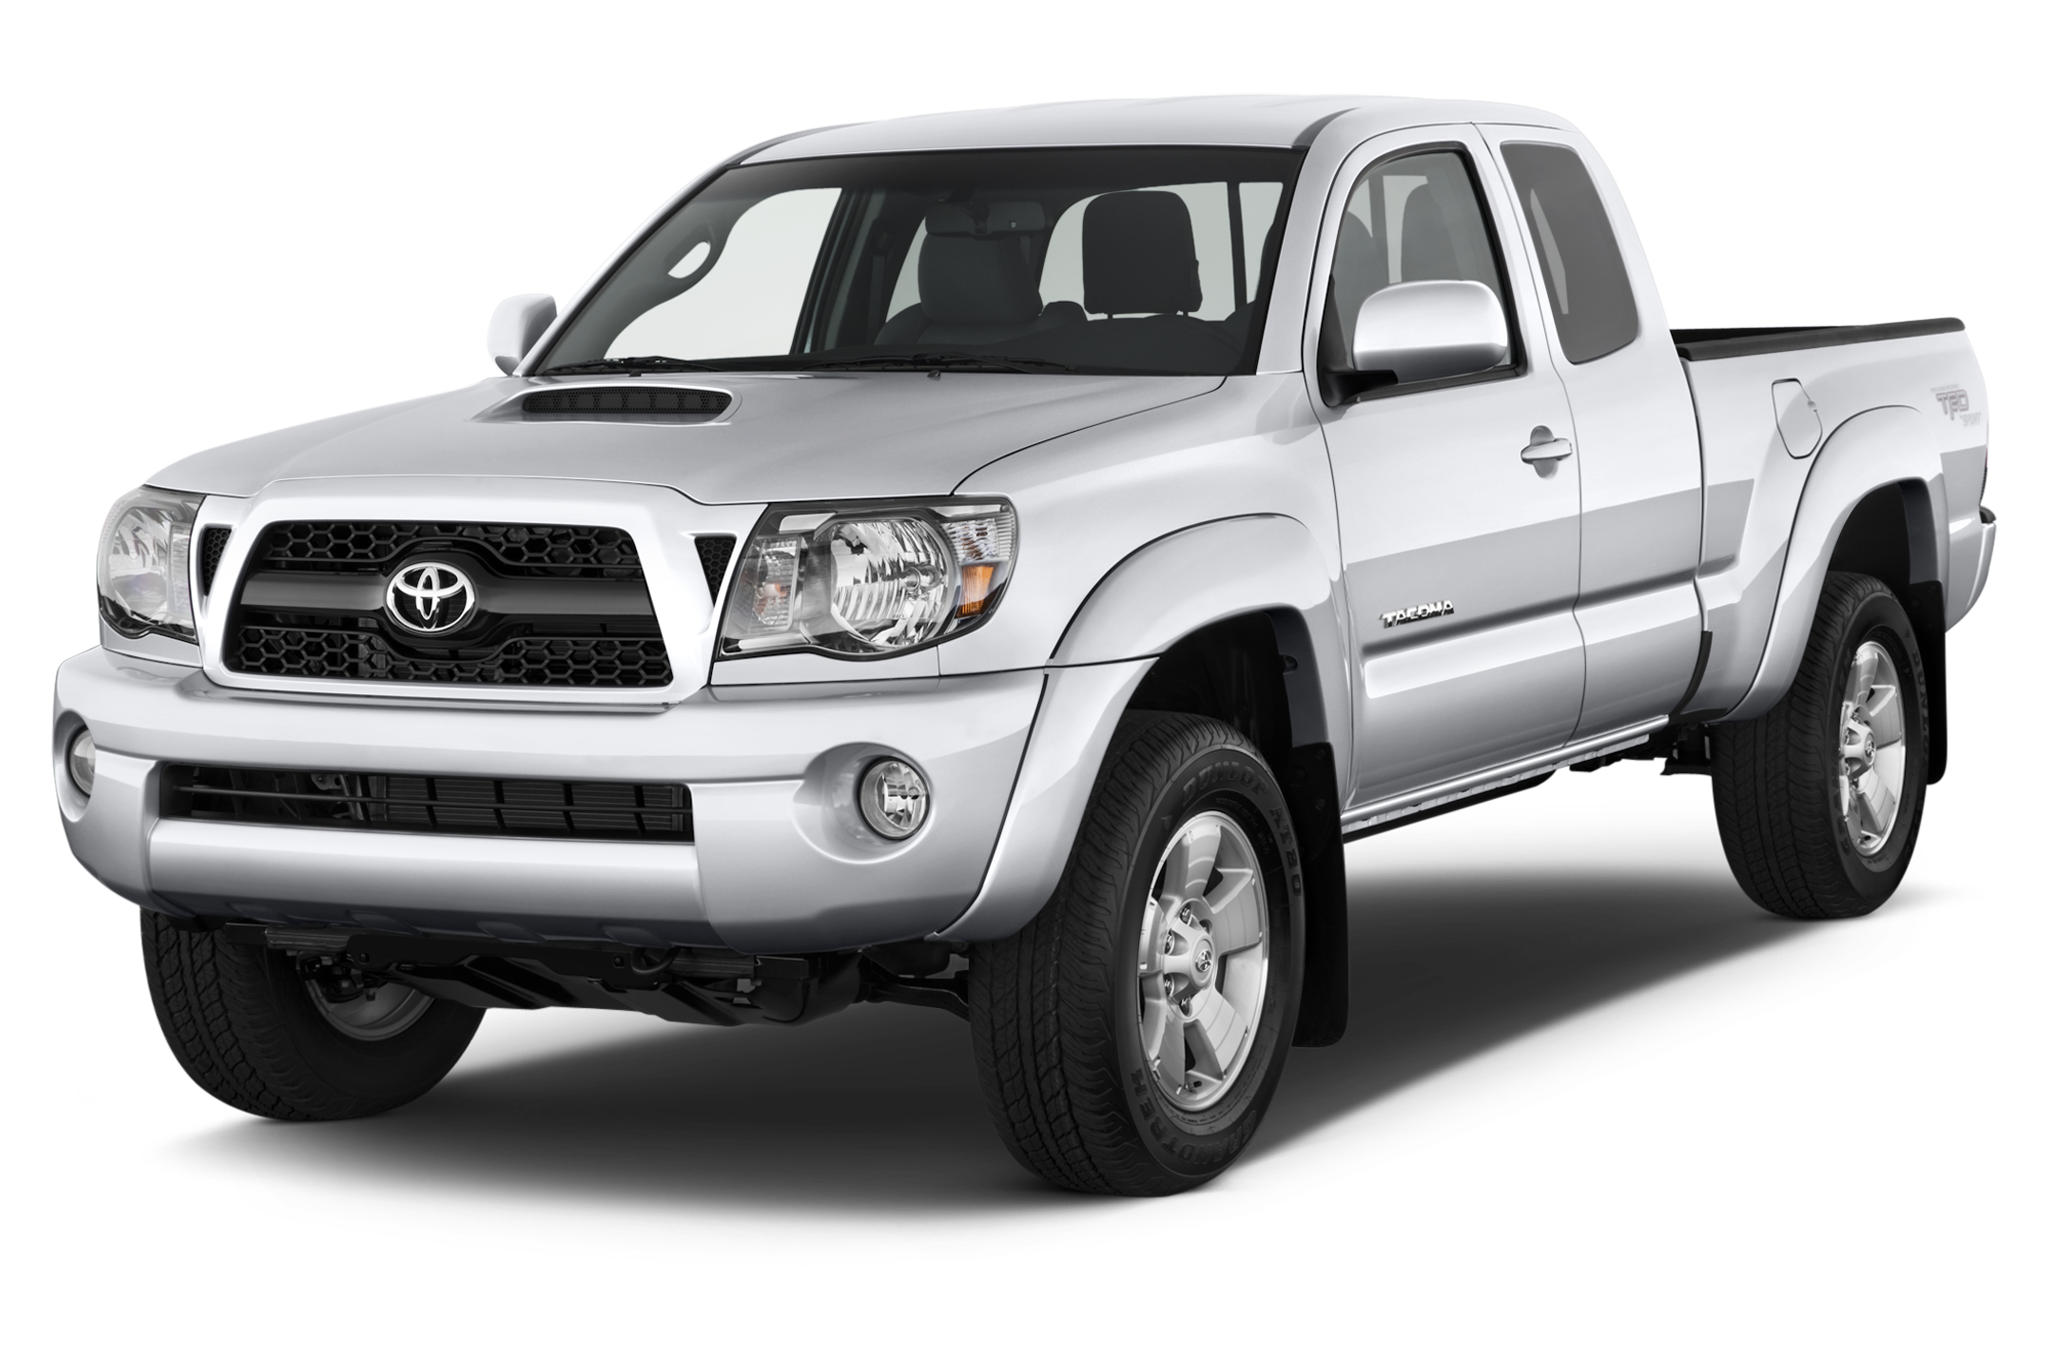 2011 toyota tacoma prerunner access cab v6 at specs and features msn autos. Black Bedroom Furniture Sets. Home Design Ideas